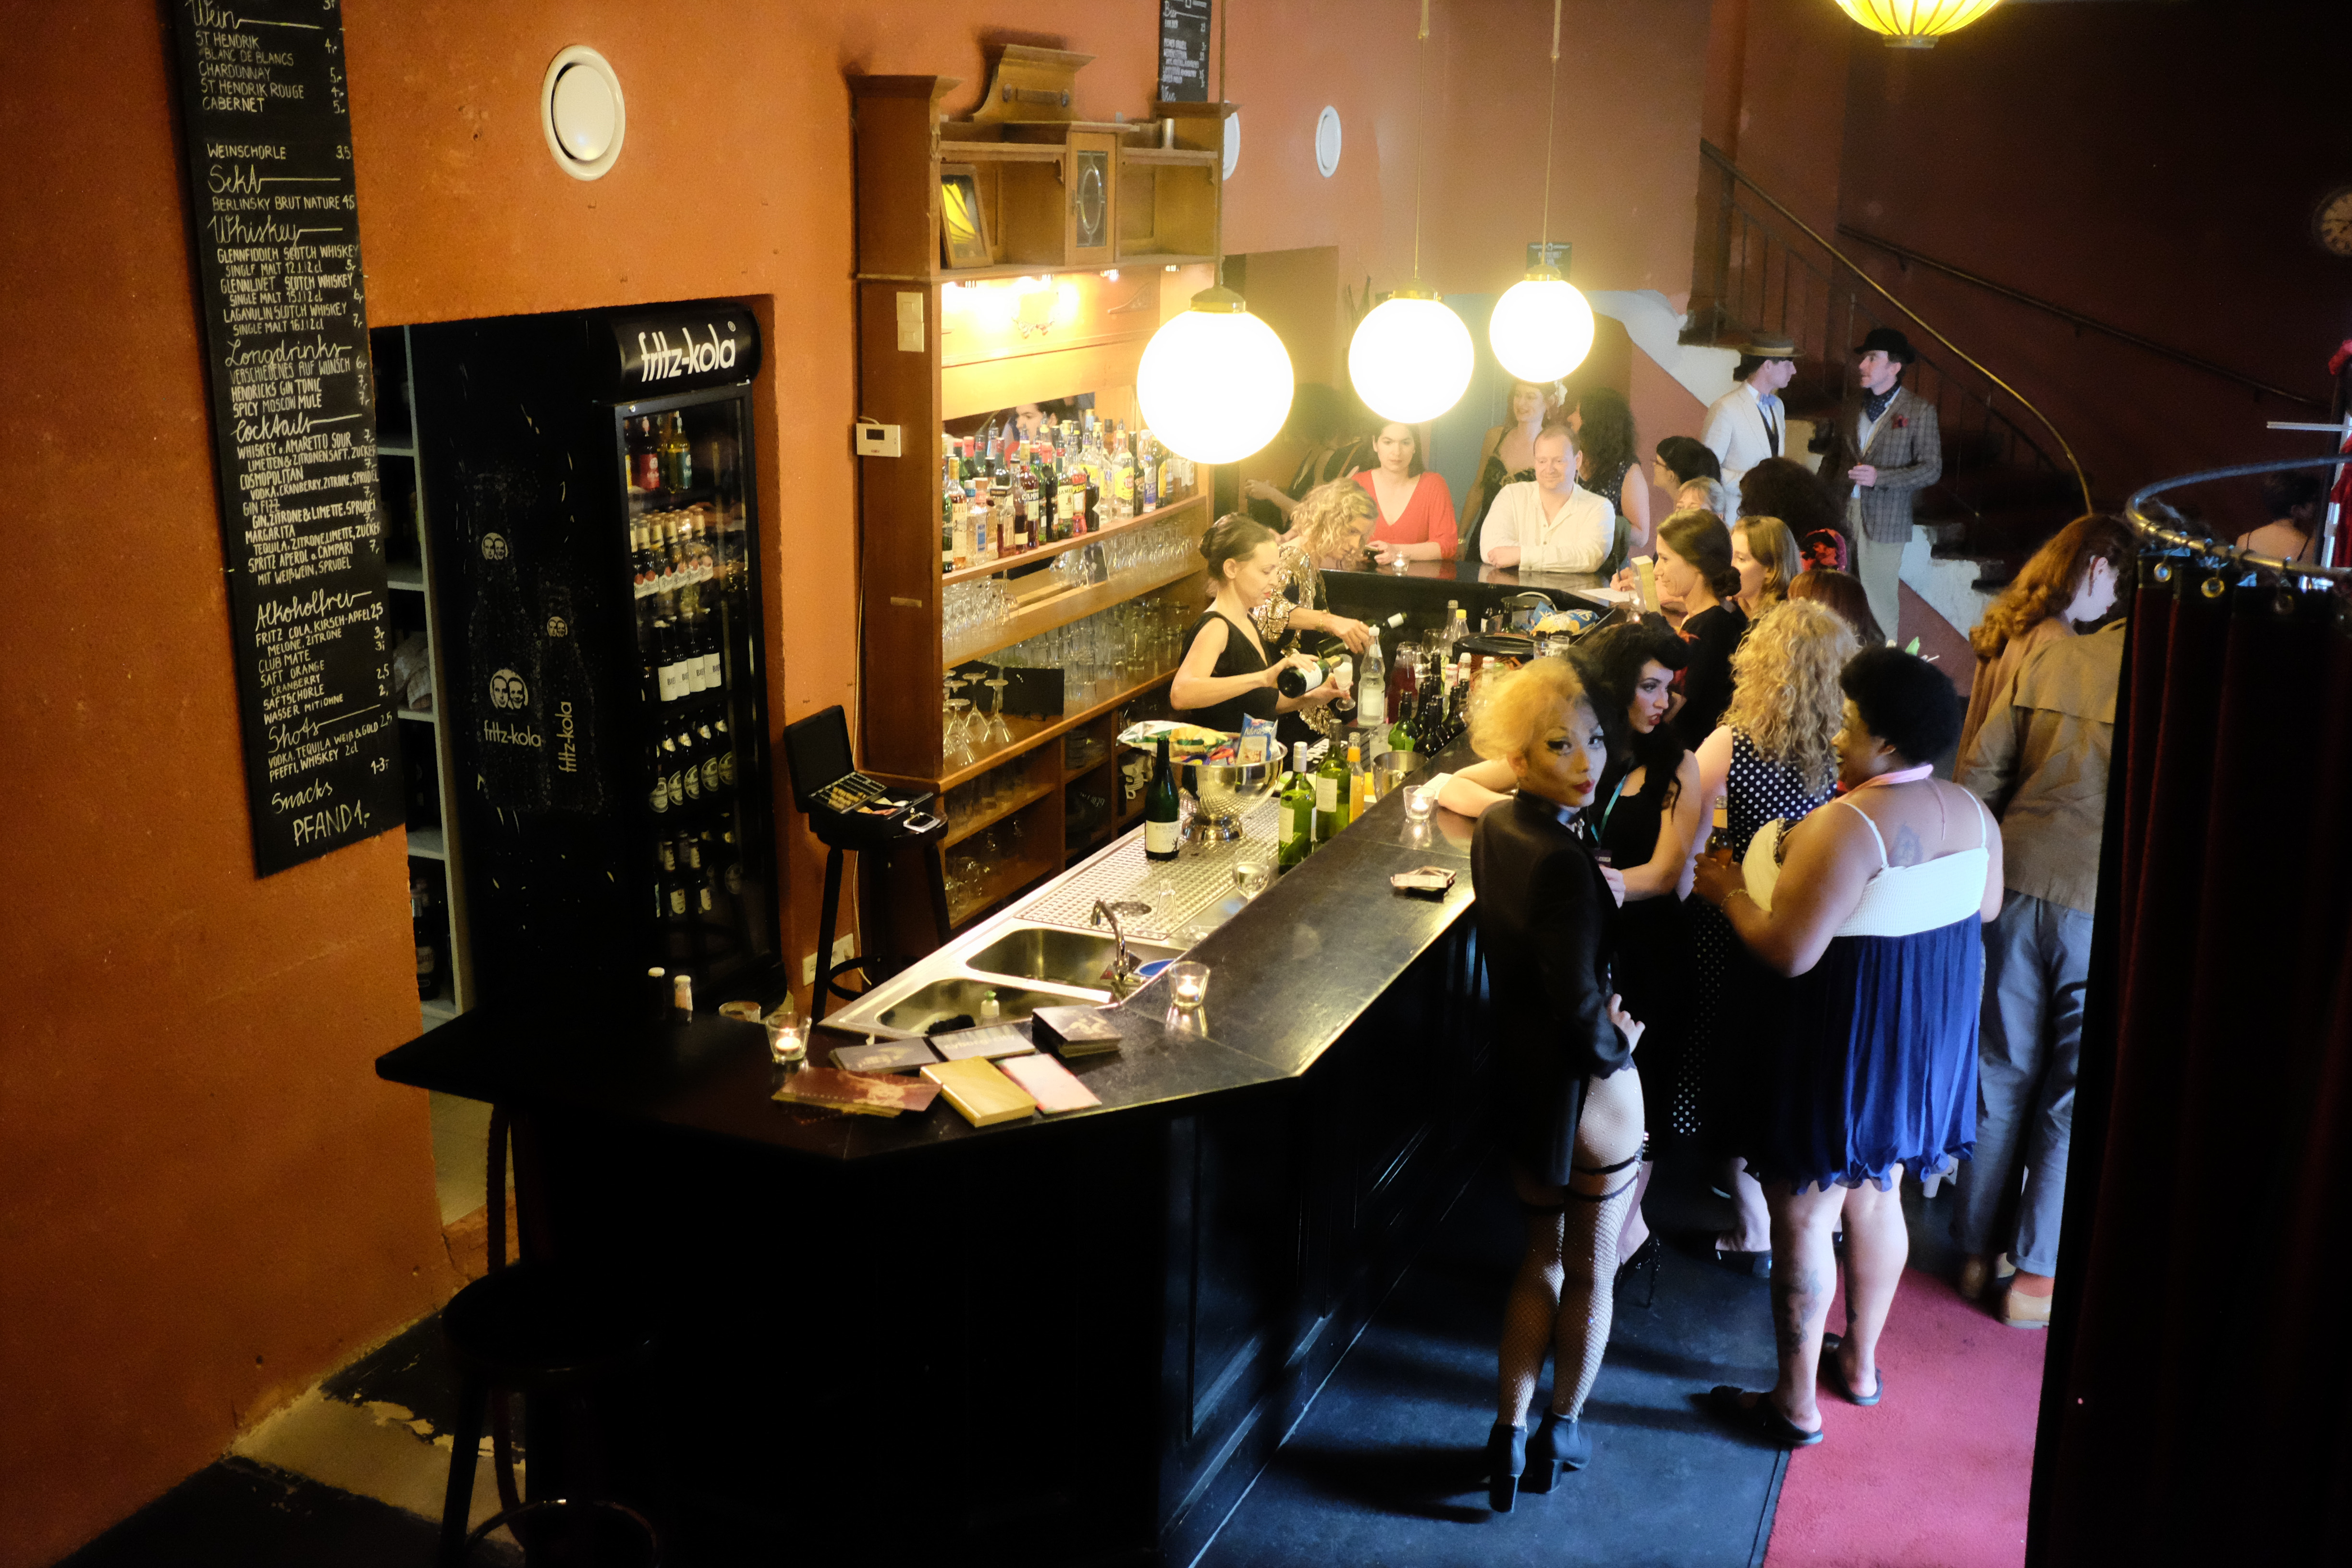 People crowd around the bar at Delphi theater during a Berlin Burlesque Week event.